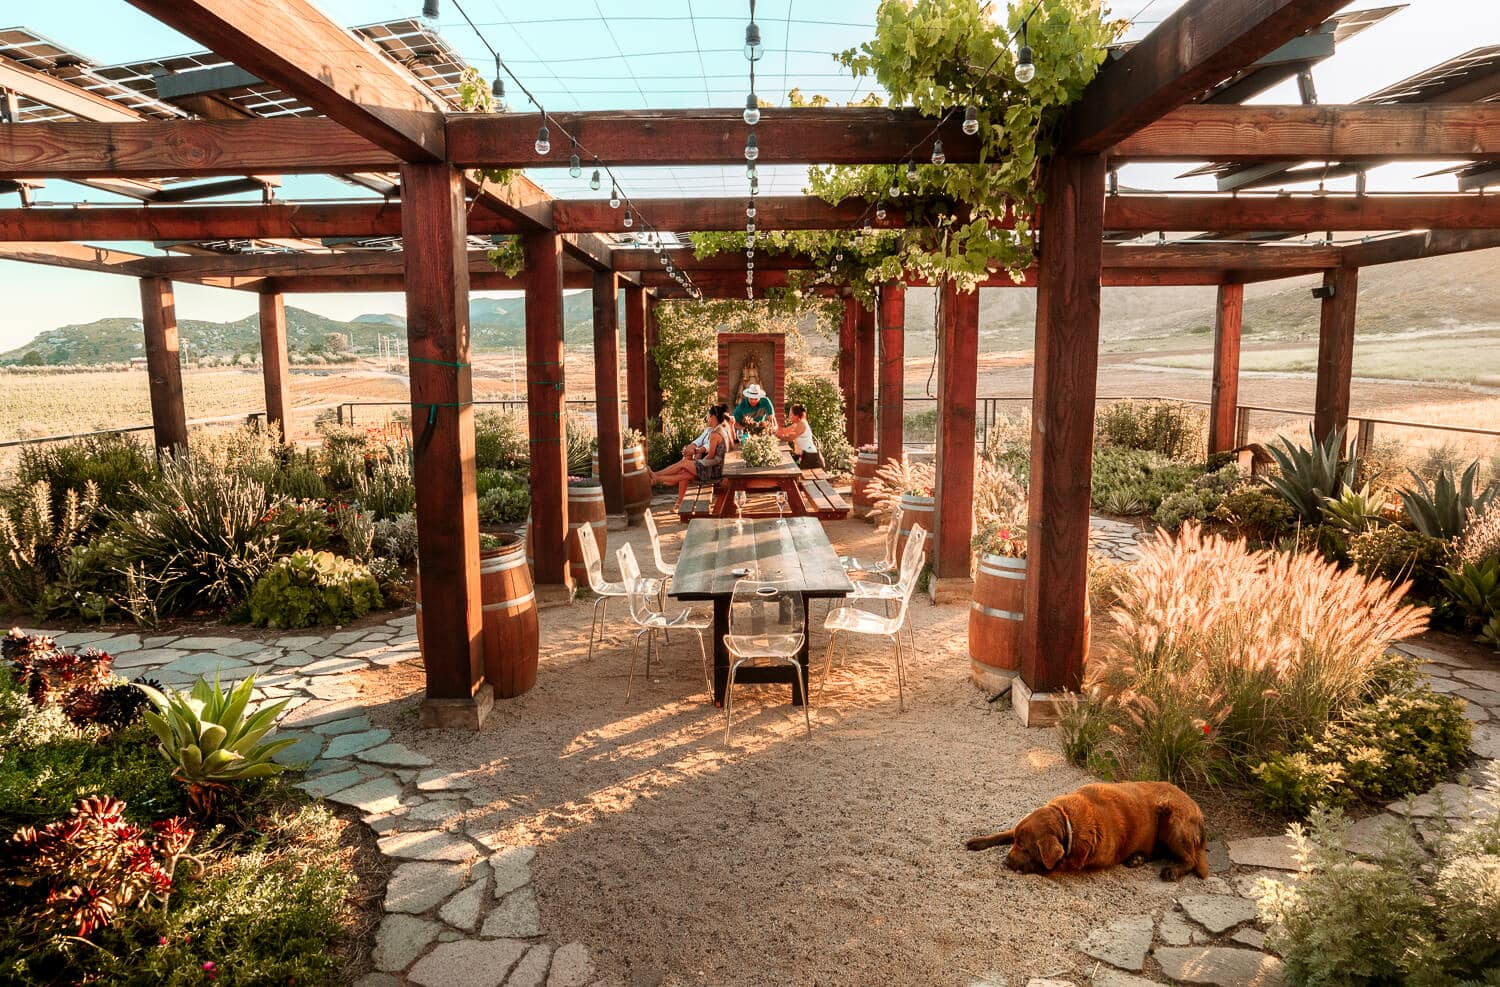 Finca La Carodilla | Valle de Guadalupe is one of the most up and coming wine regions in the world. From it's innovative designs, picturesque views and award winning wines, keep reading to discover which Valle de Guadalupe wineries you shouldn't miss while in Baja California, Mexico.